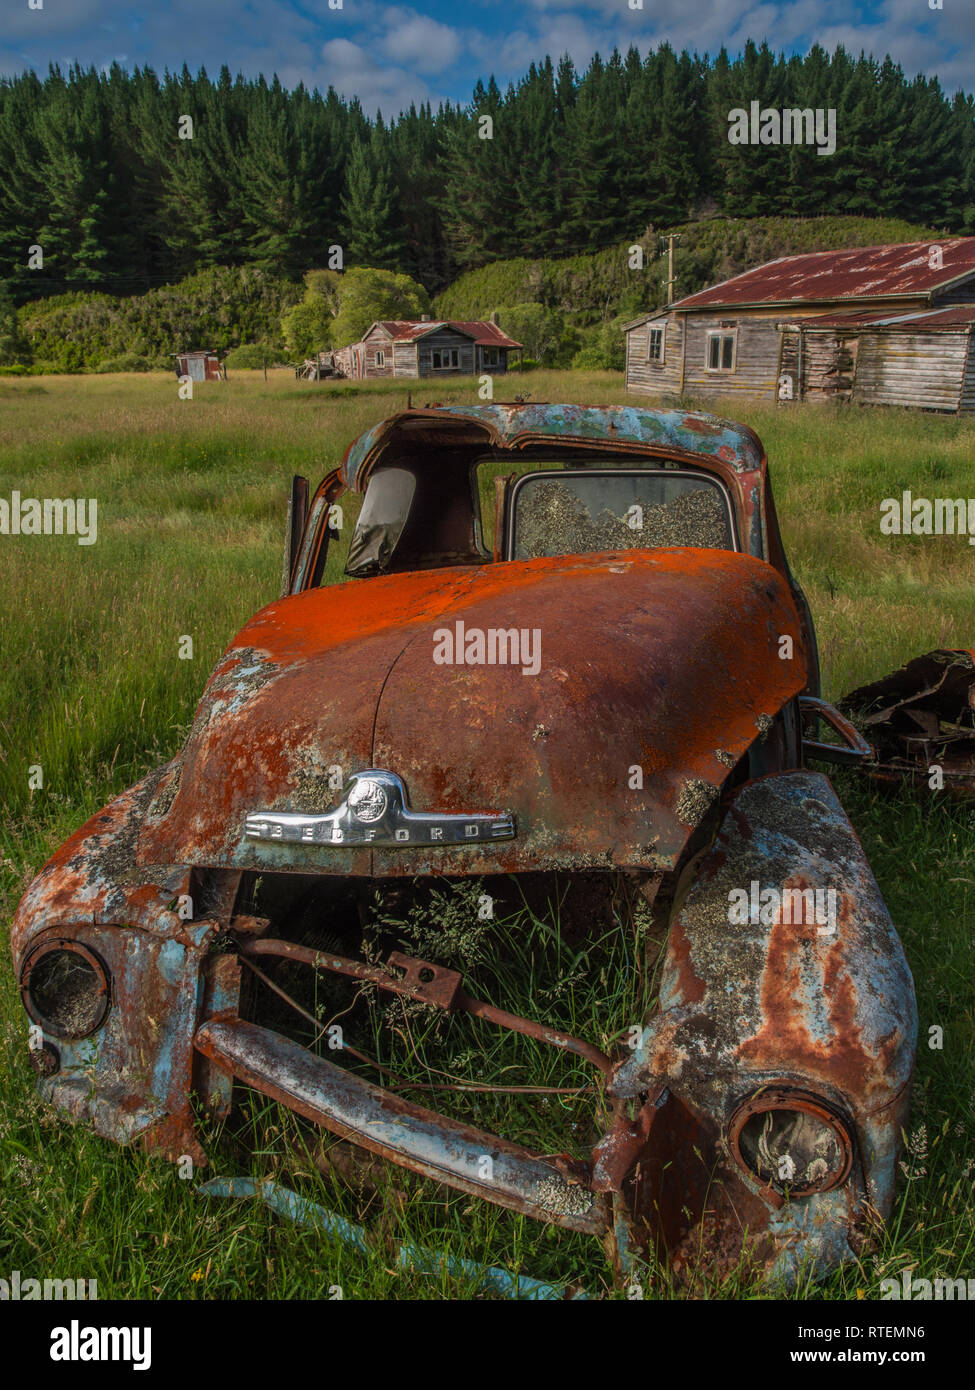 Rusty derelict Bedford truck and abandoned buildings, Endeans Mill, Waimiha, Ongarue, King Country, New Zealand Stock Photo